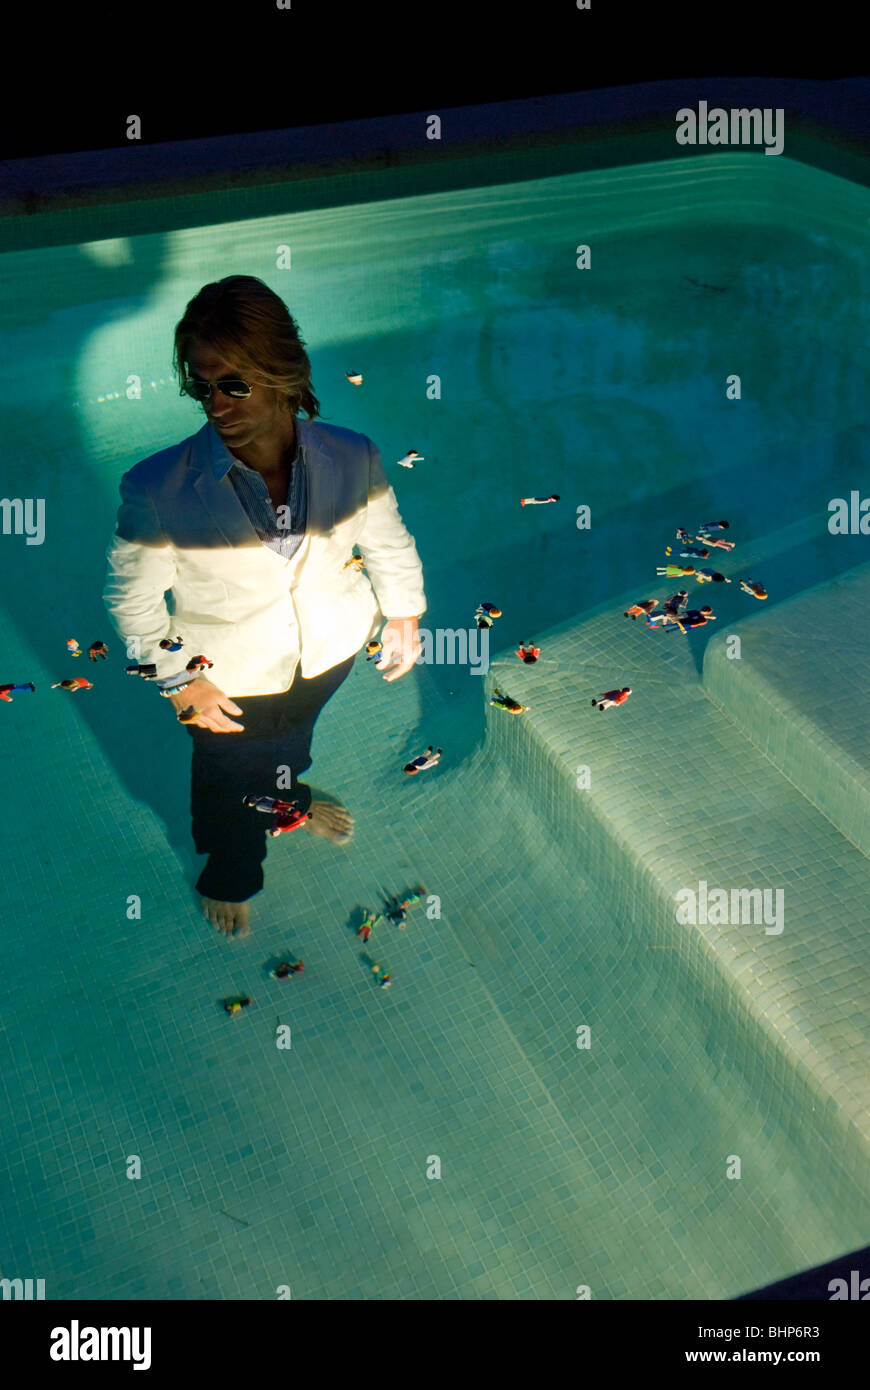 bizarre image of a suited blond man with sunglasses submerged in a  swimming pool surrounded by floating toy figure - Stock Image